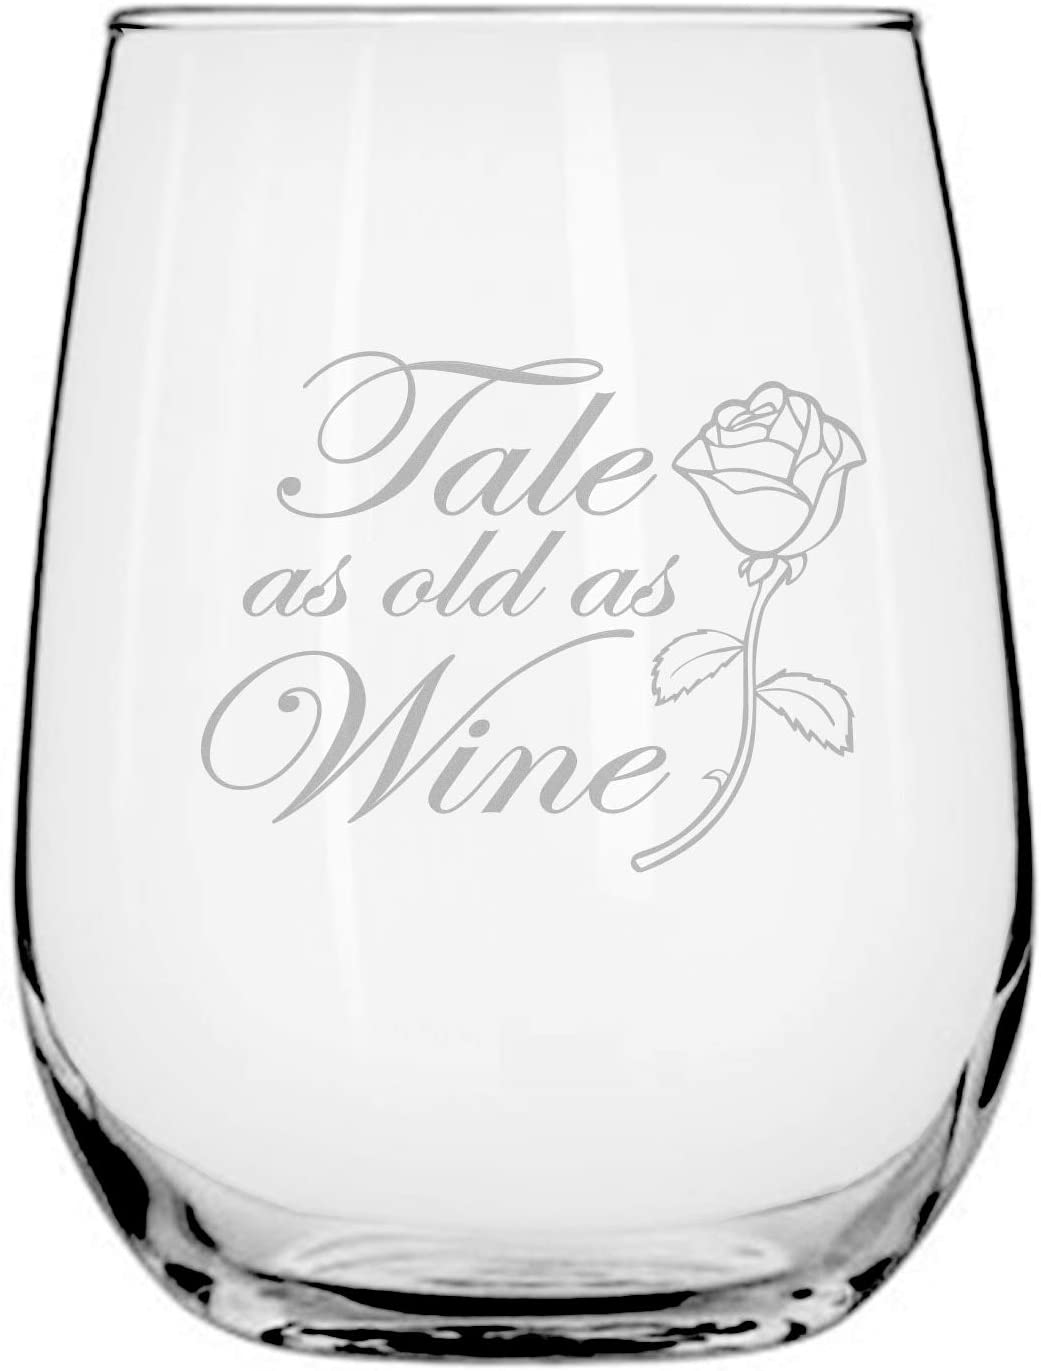 Beauty Beast Disney-Inspired Stemless Wine Glass | Princess Belle | Birthday | Housewarming | Wedding Registry | Anniversary Present | by Laser Etchpressions | Tale as Old as Wine